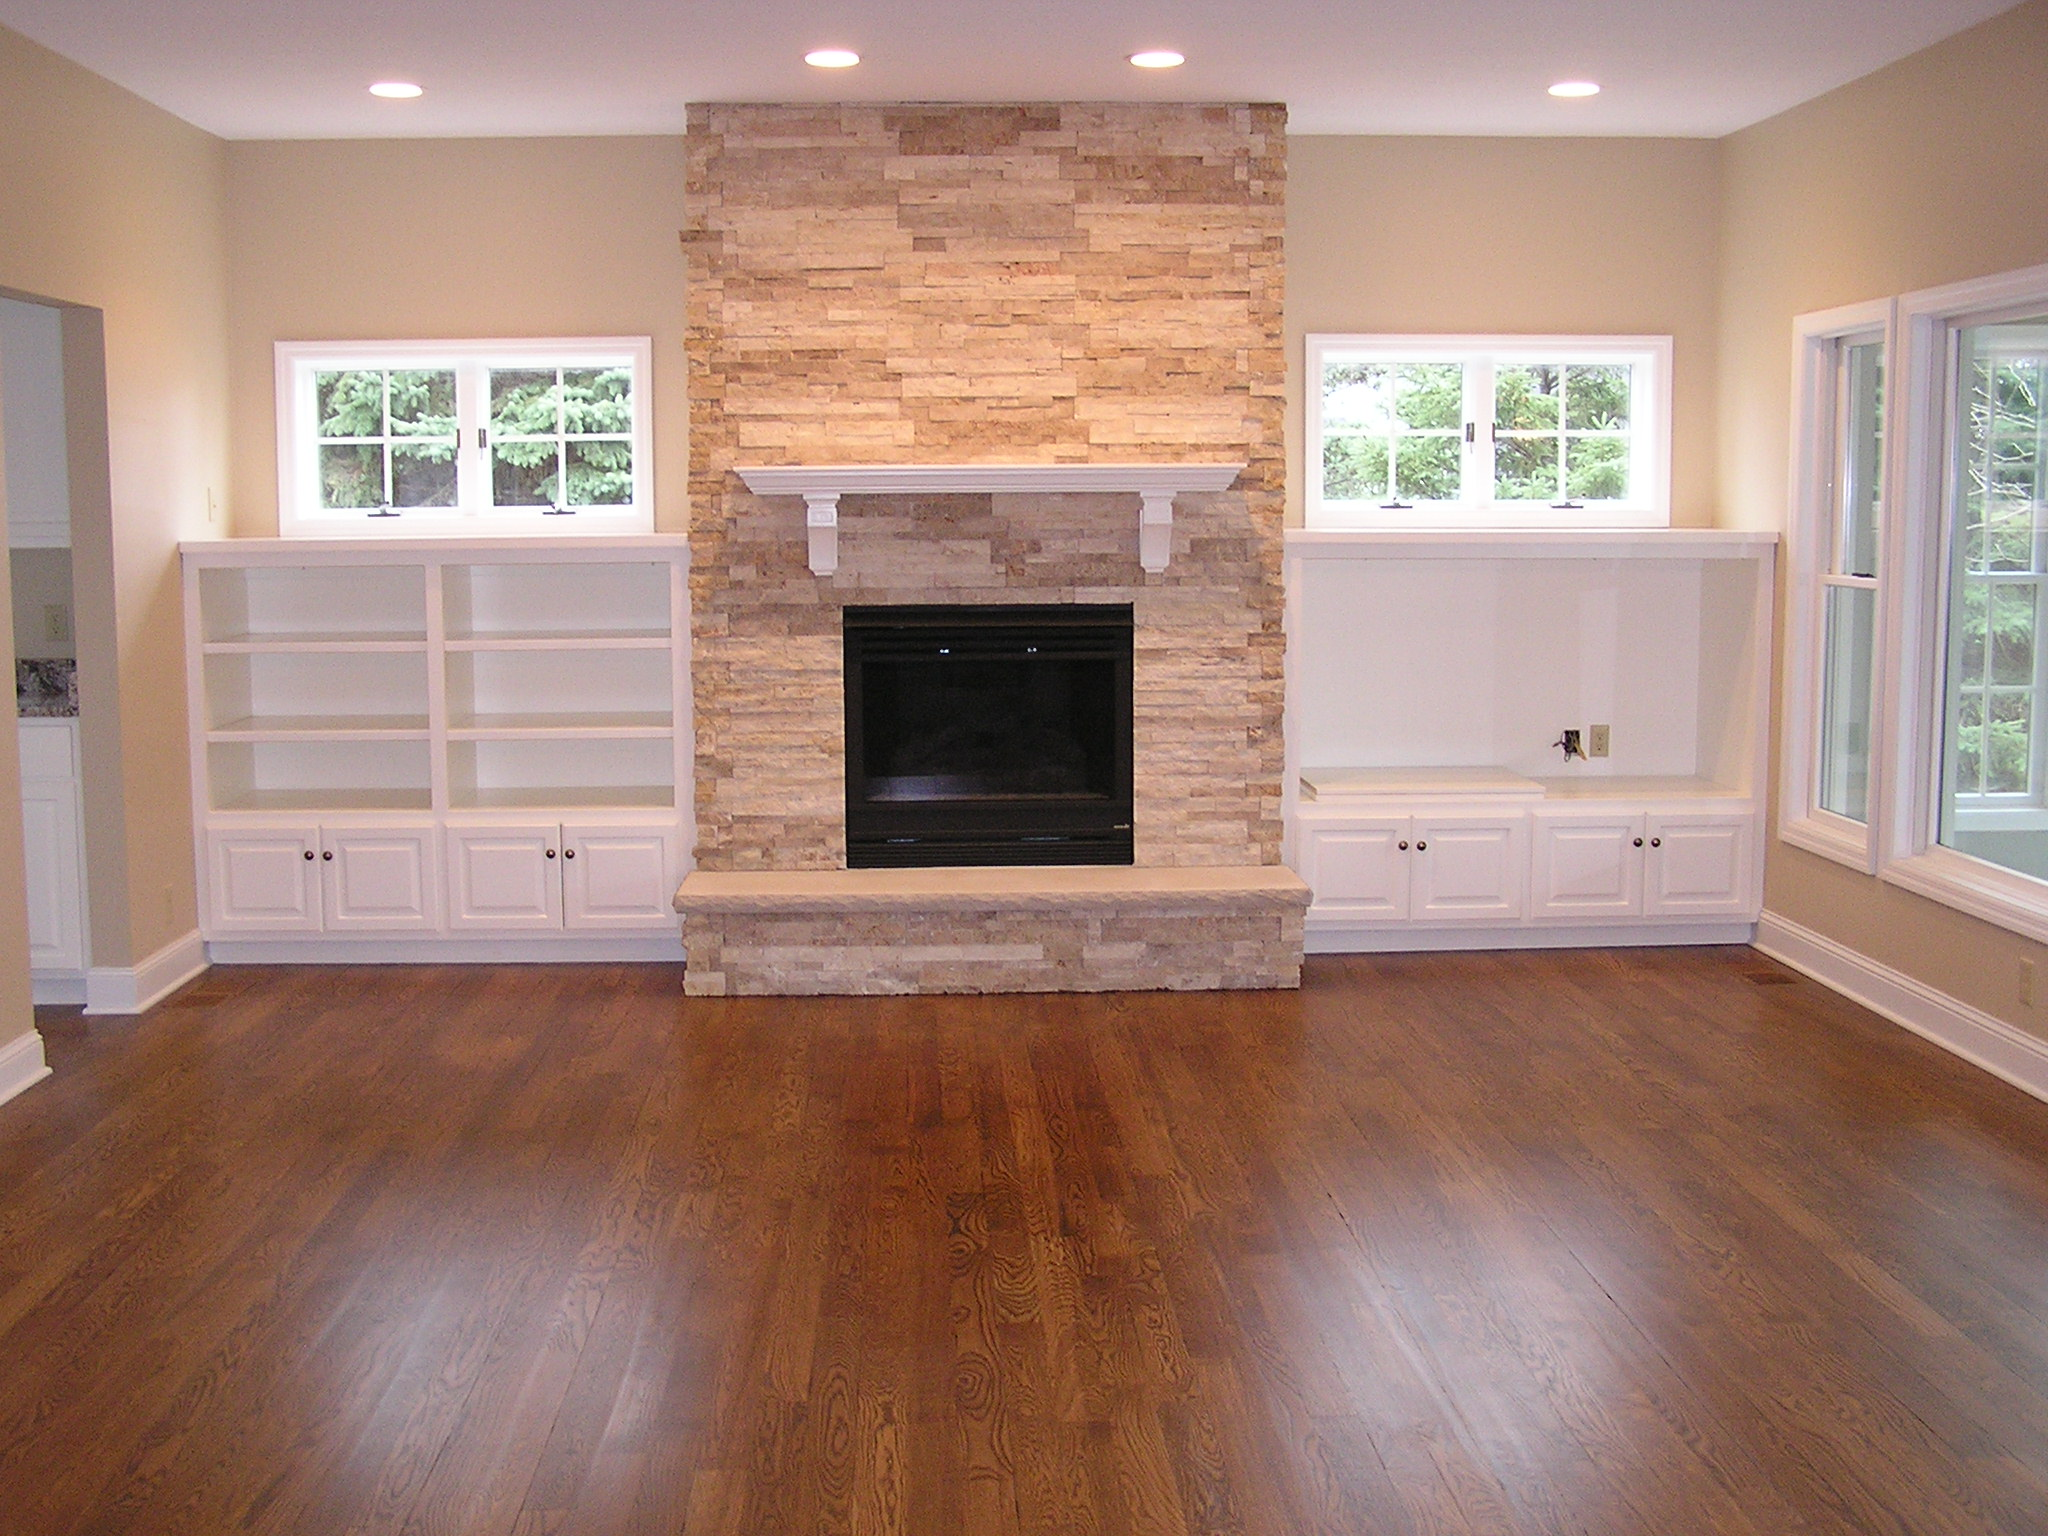 Hardwood floors and gas fireplace